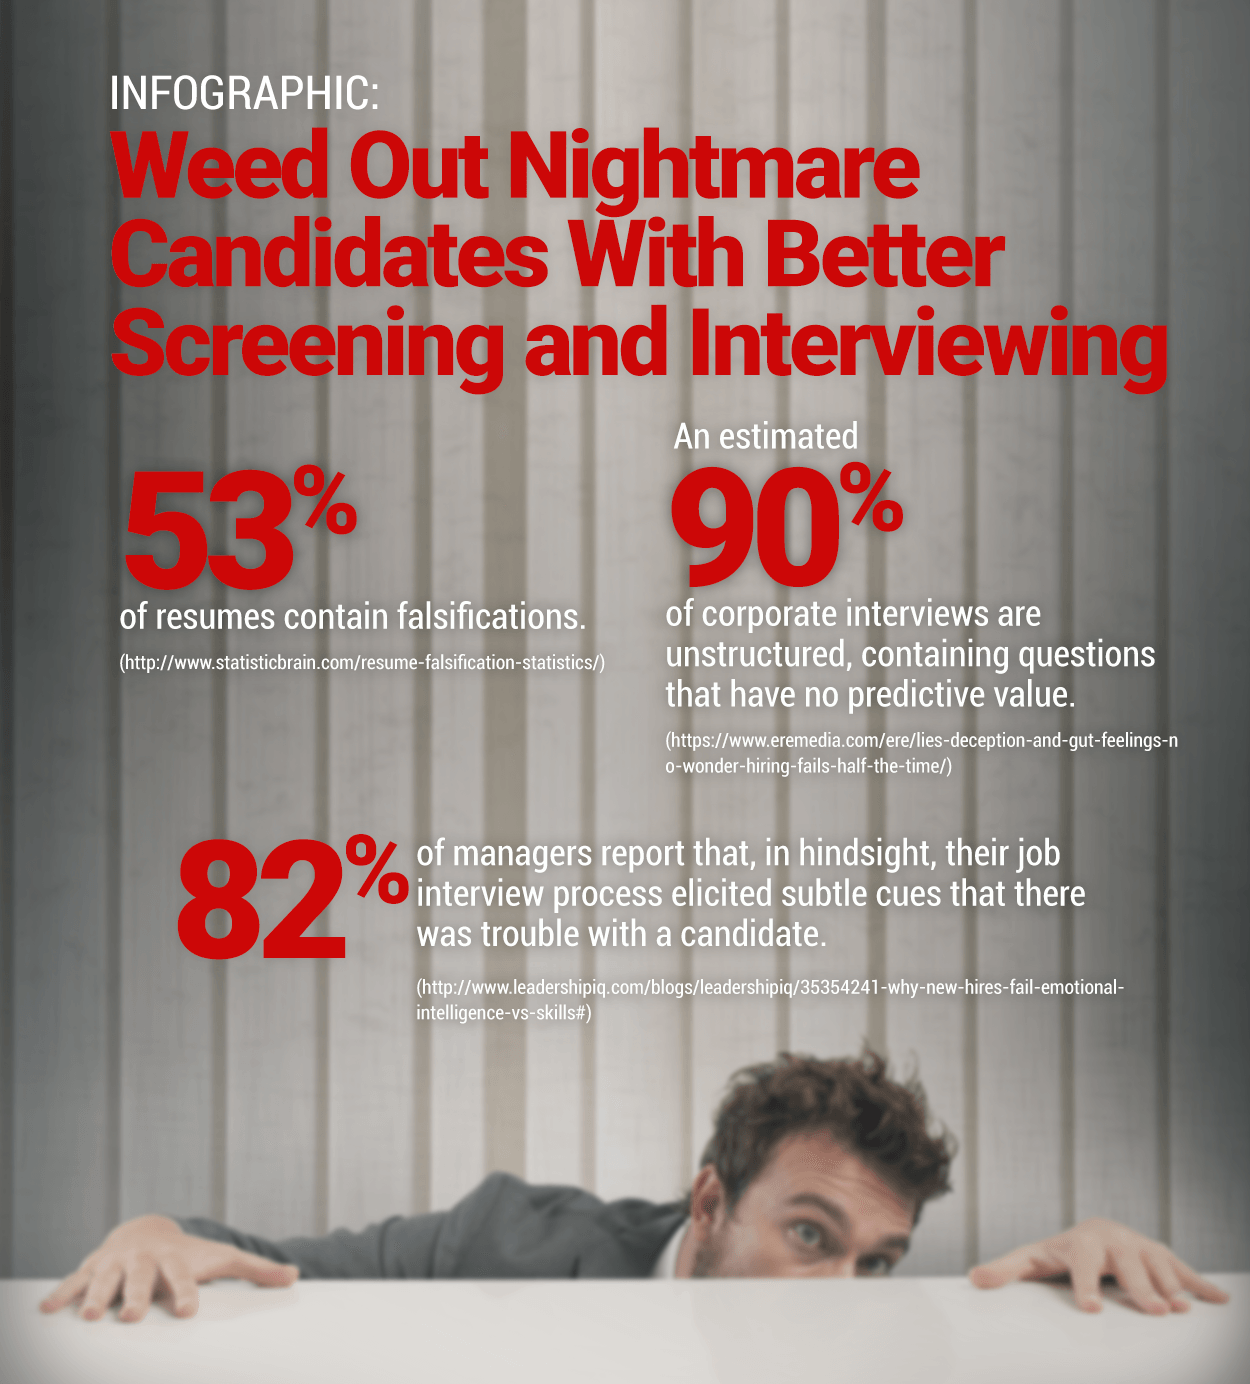 INFOGRAPHIC: Weed Out Nightmare Candidates With Better Screening and Interviewing